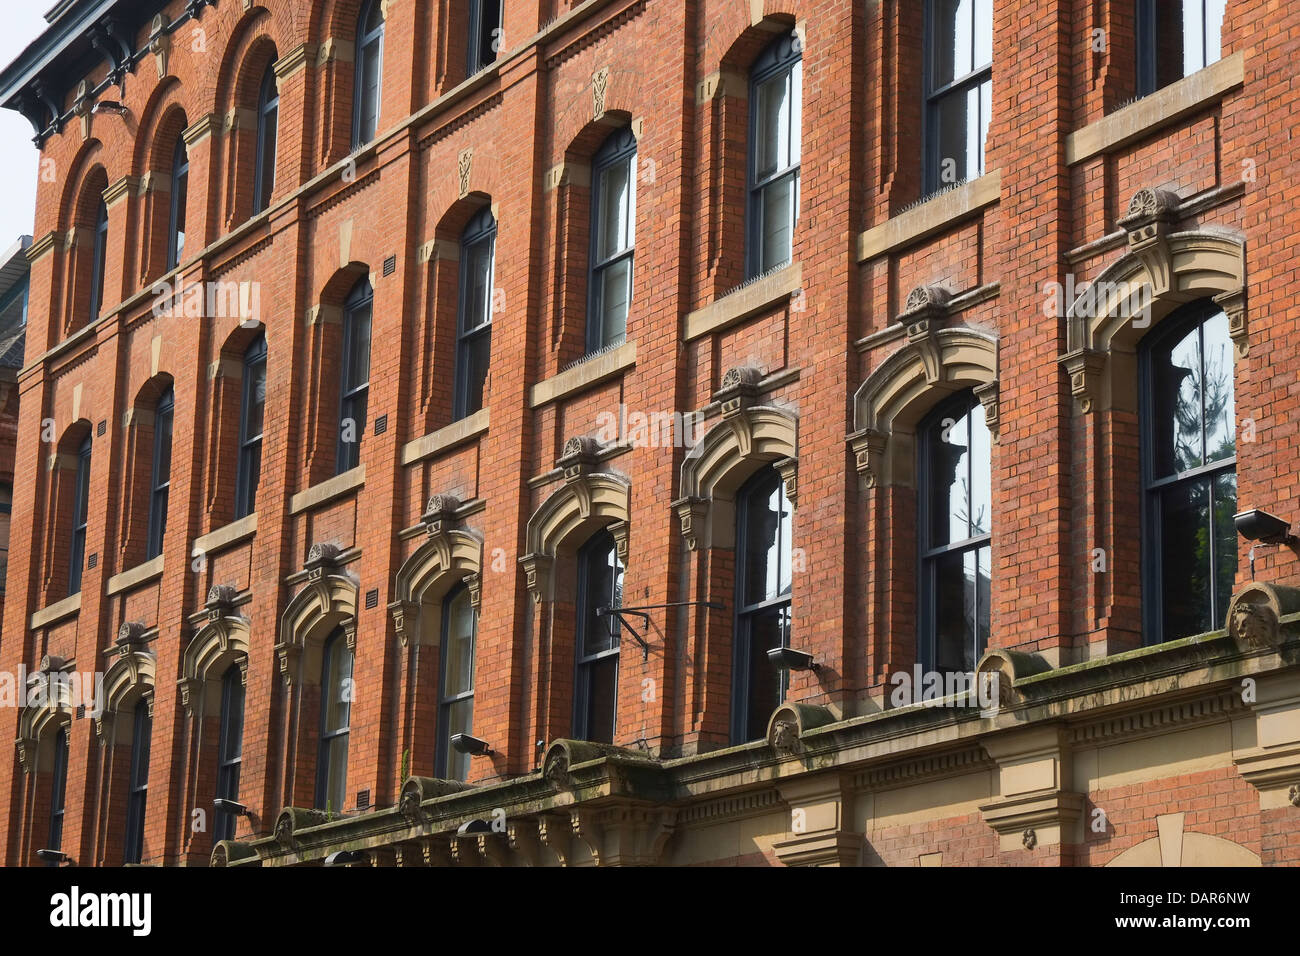 England, Manchester, facade of the now disused Fire Station opposite Piccadilly Rail Station - Stock Image